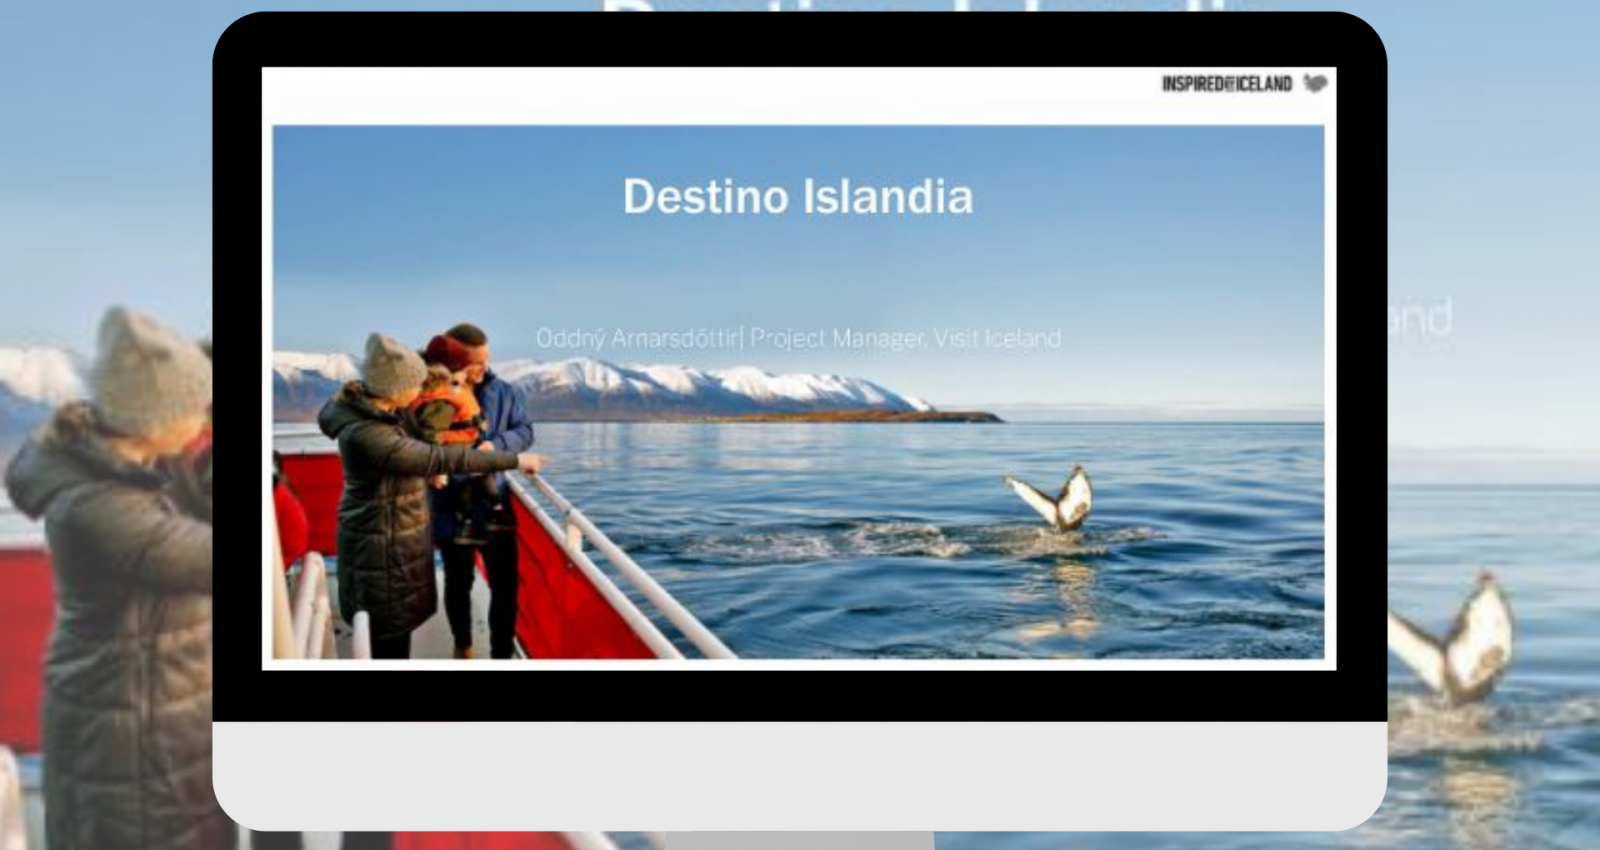 webinar visit iceland interface events